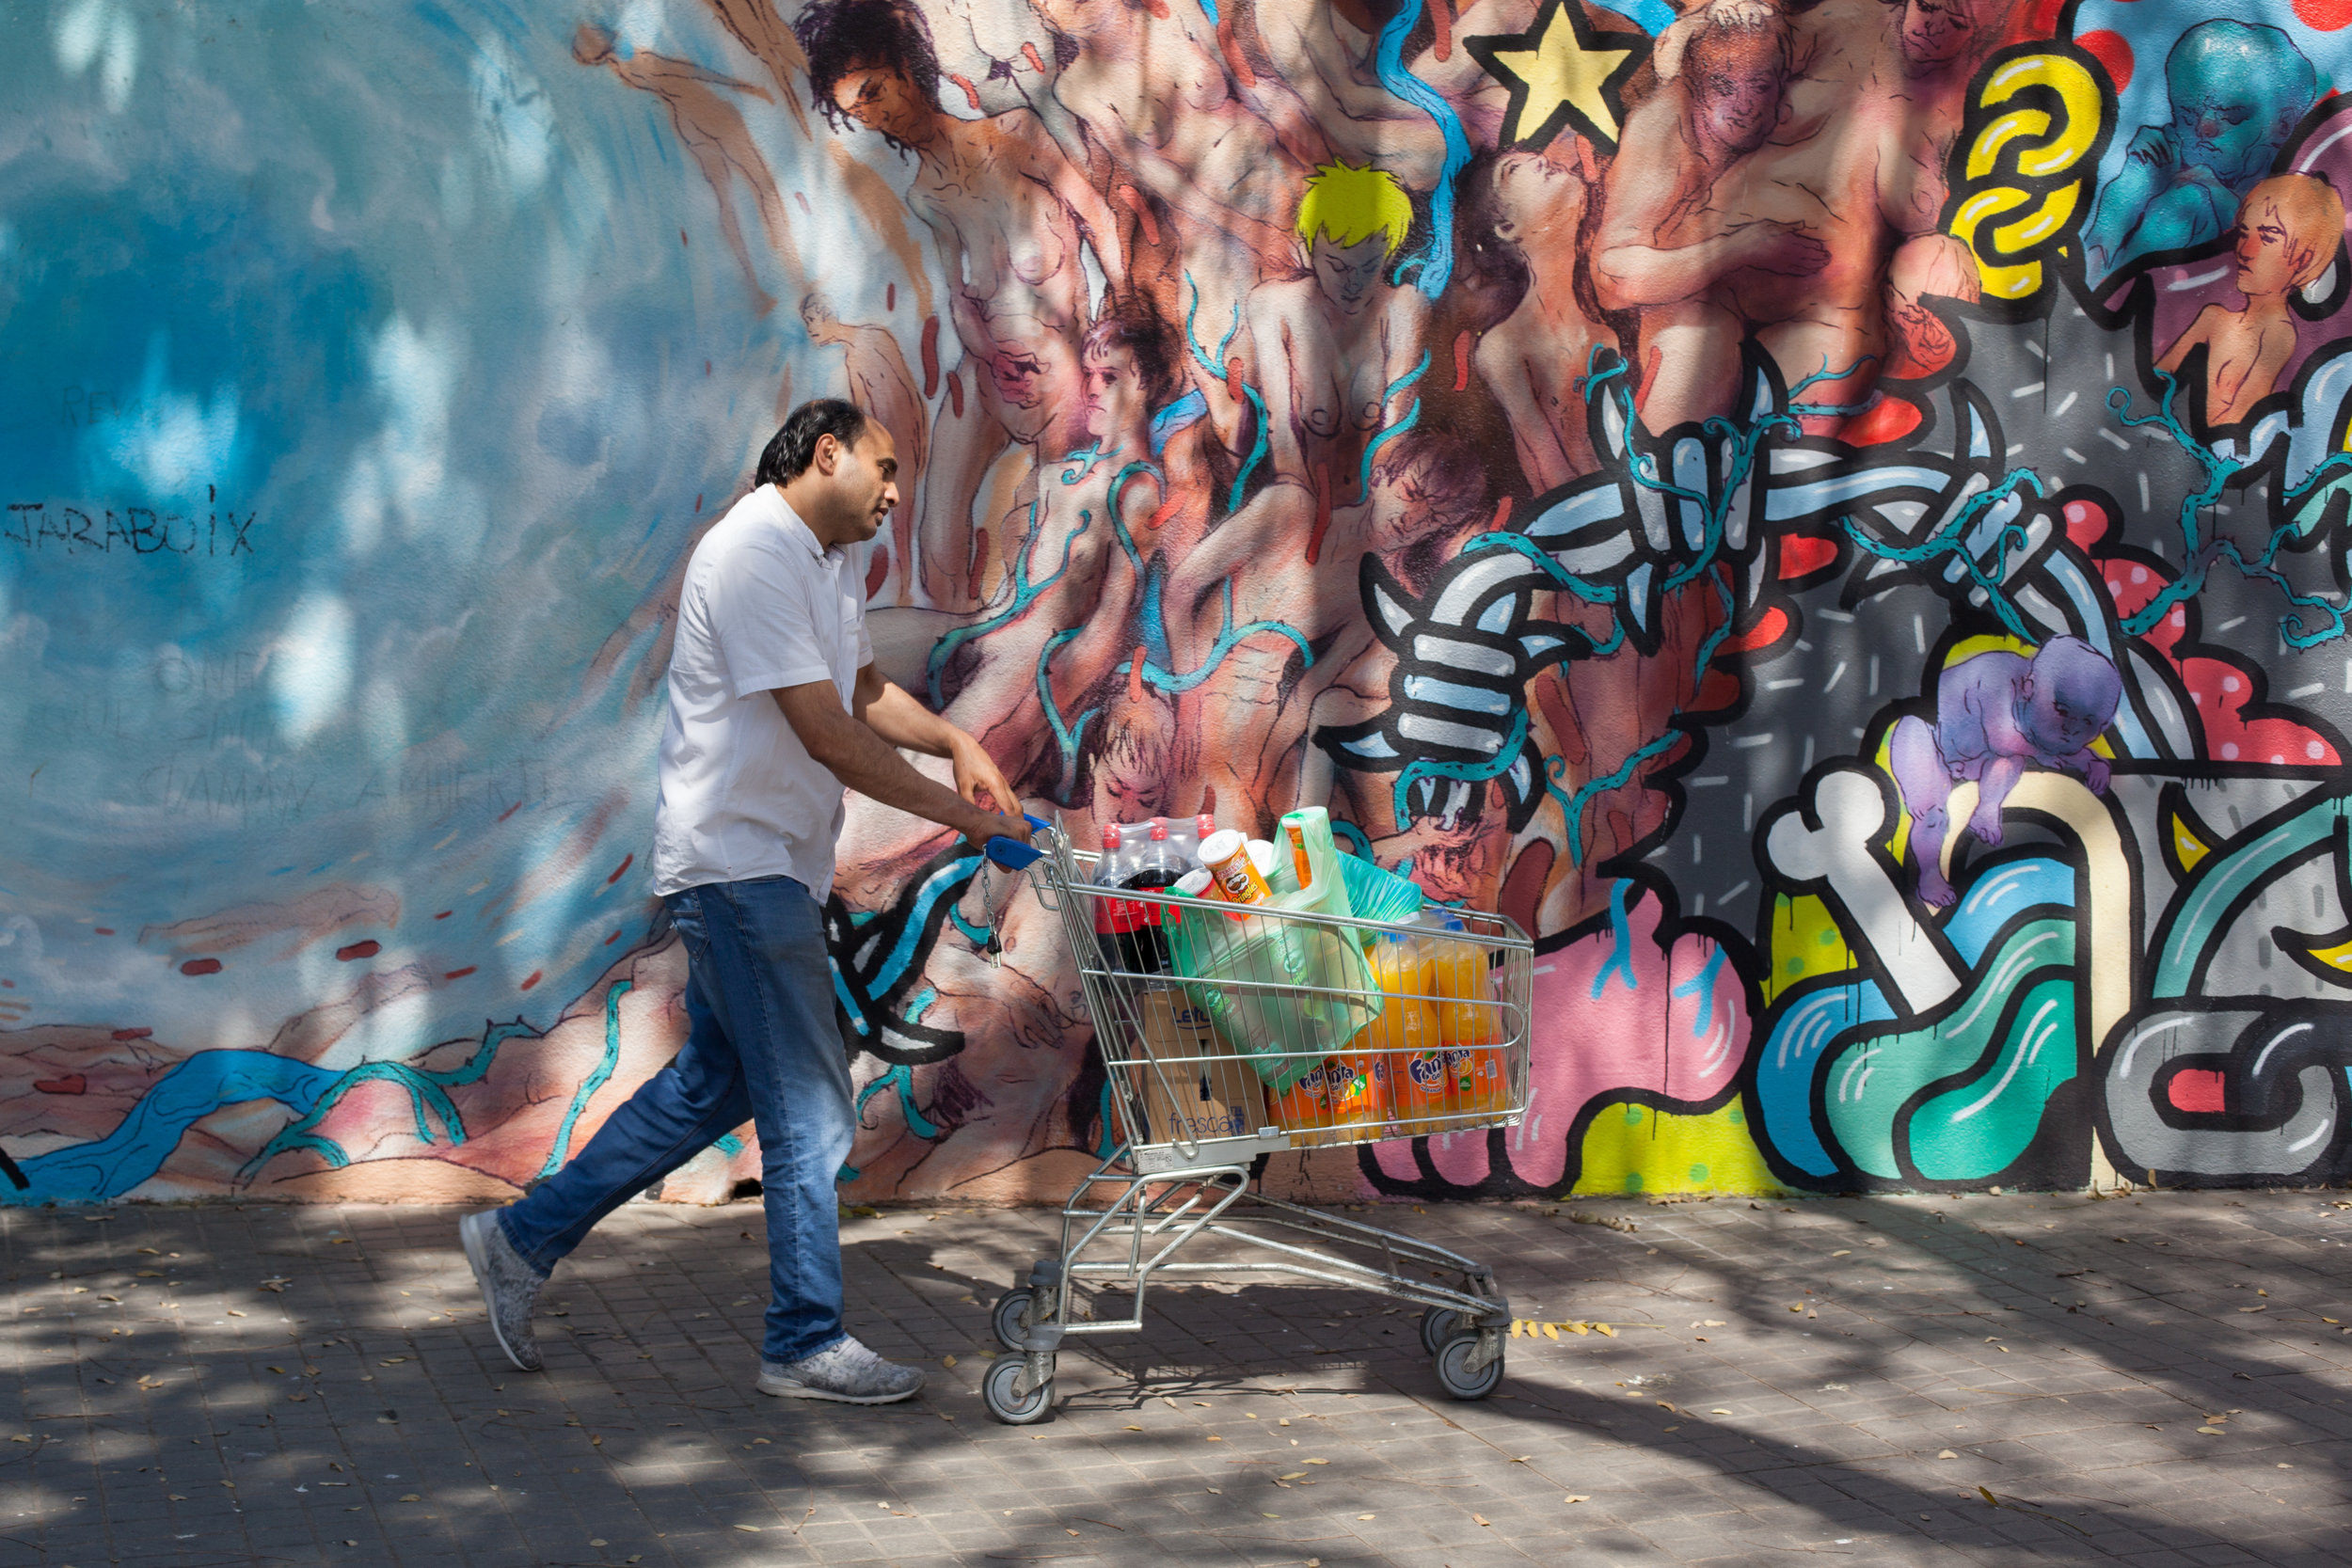 Street Photography & Street Art Tours in Barcelona.